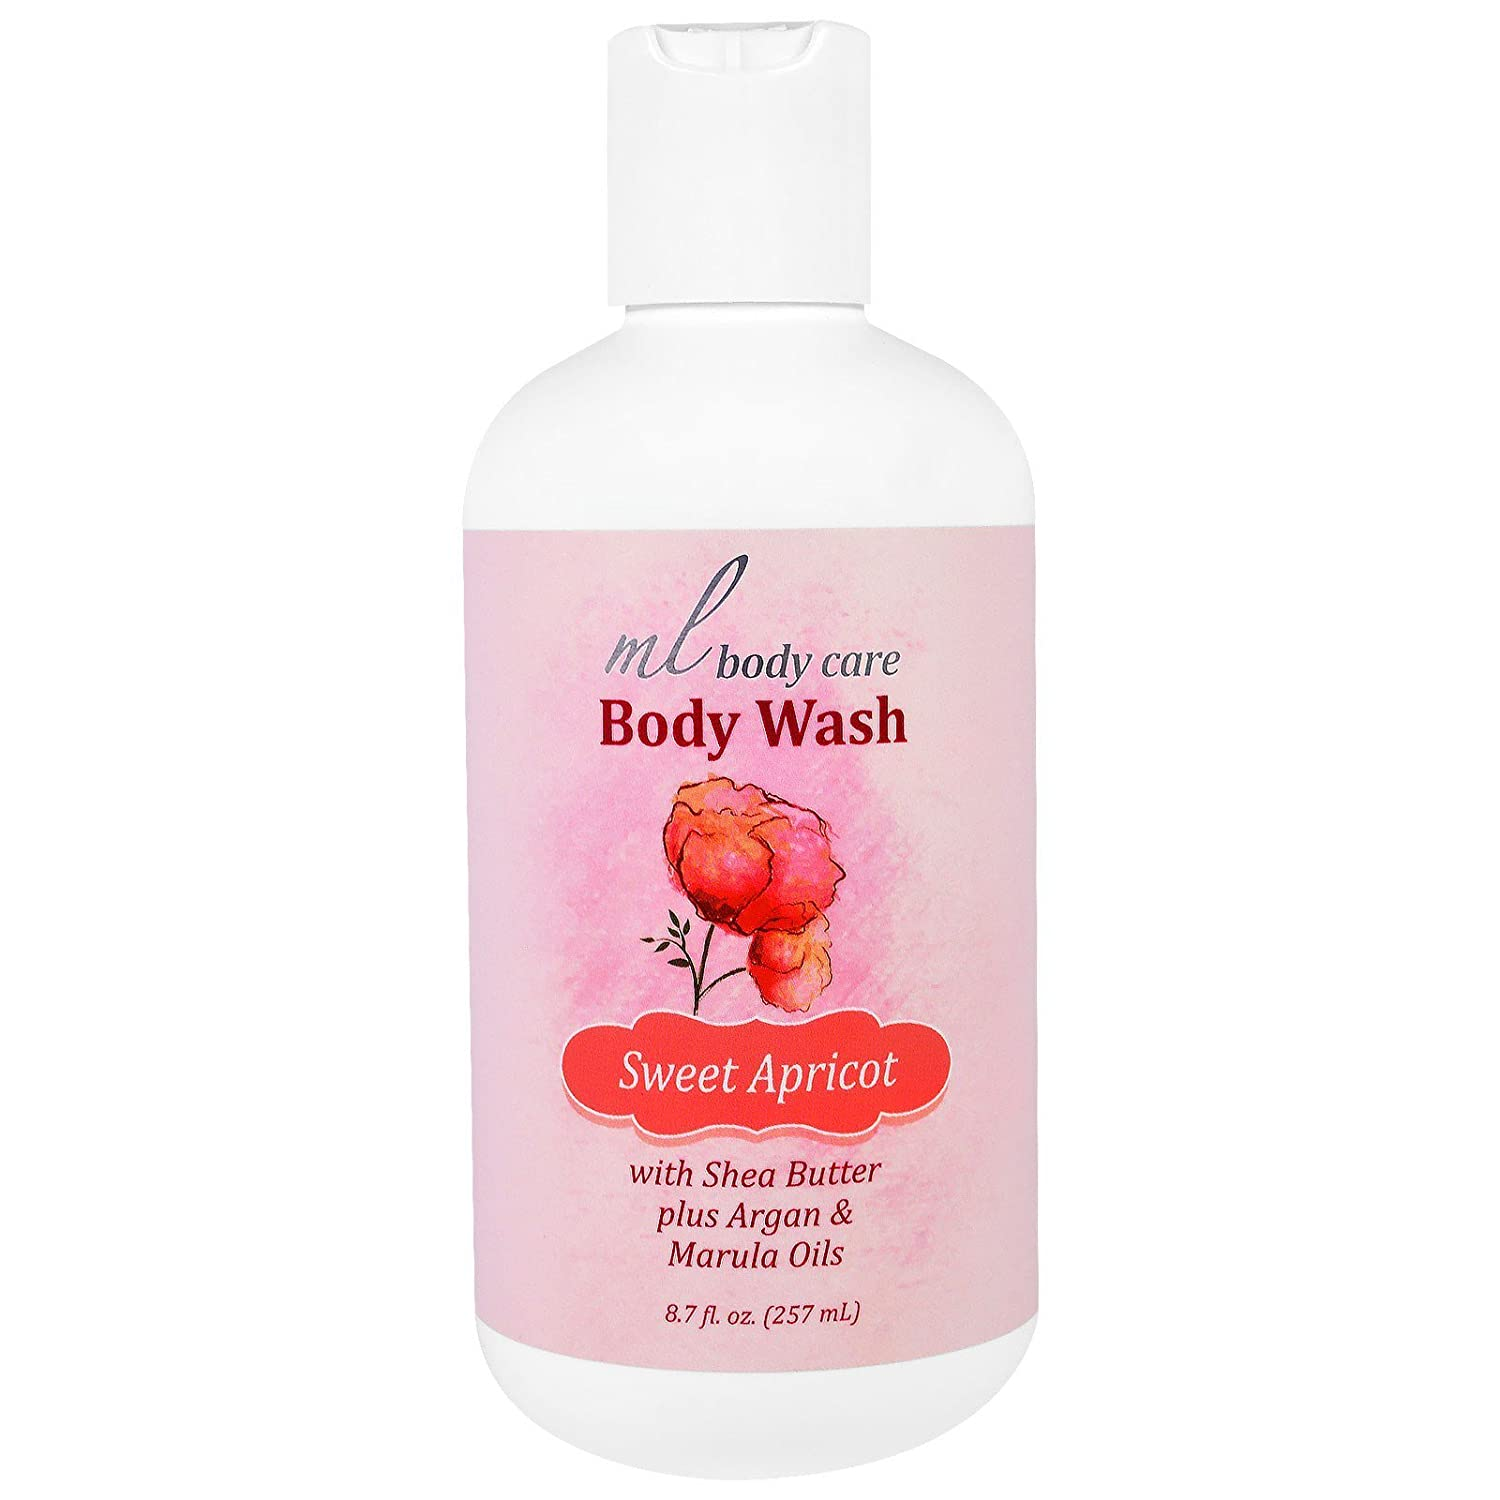 Madre Labs Body Wash Sweet Apricot Cleansing With Argan Oil Marula Oils Shea Butter 8 7 Fl Oz 257 Ml Health Personal Care